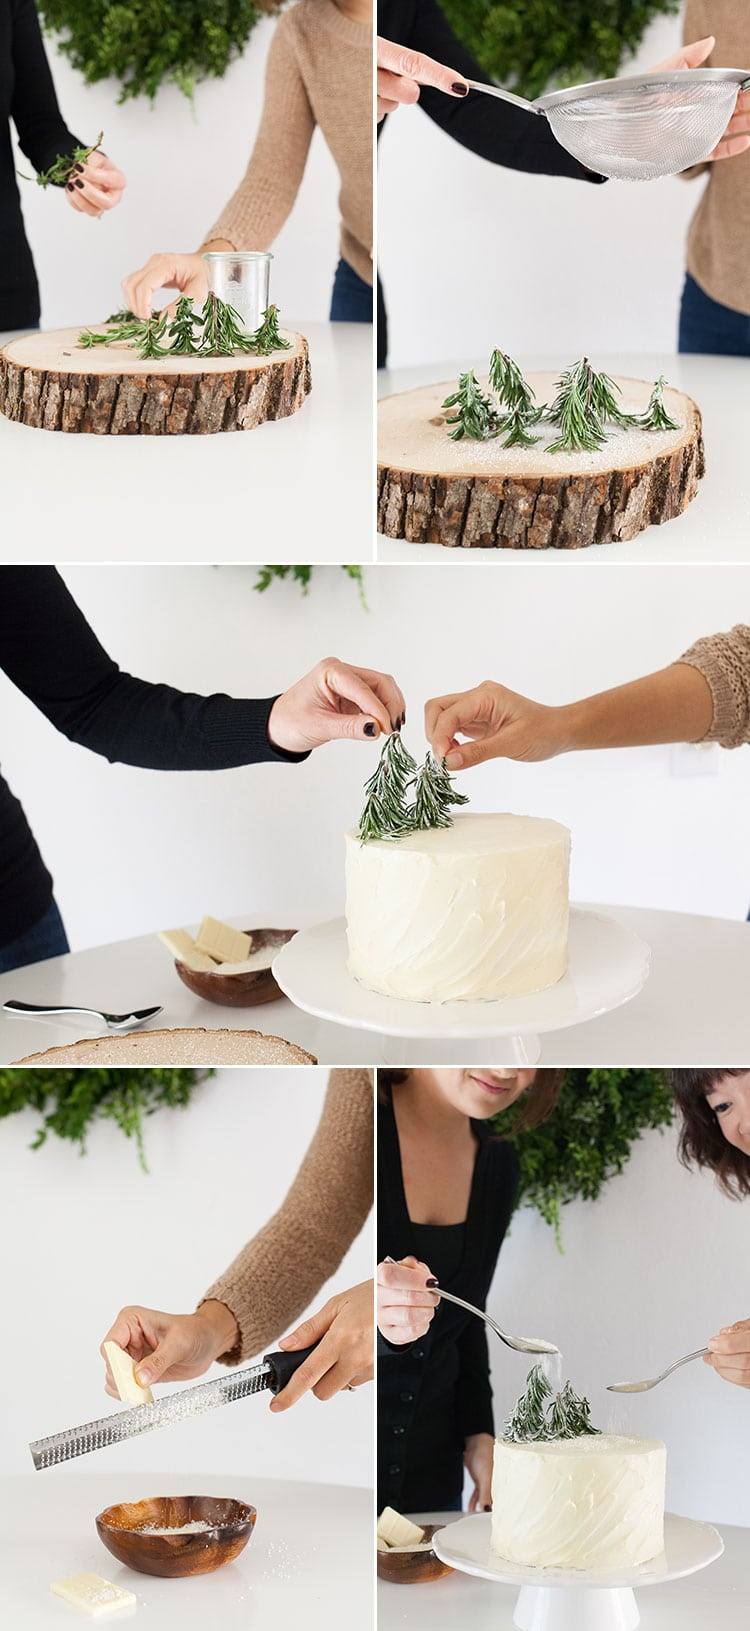 how to decorate a winter cake - How To Decorate A Cake